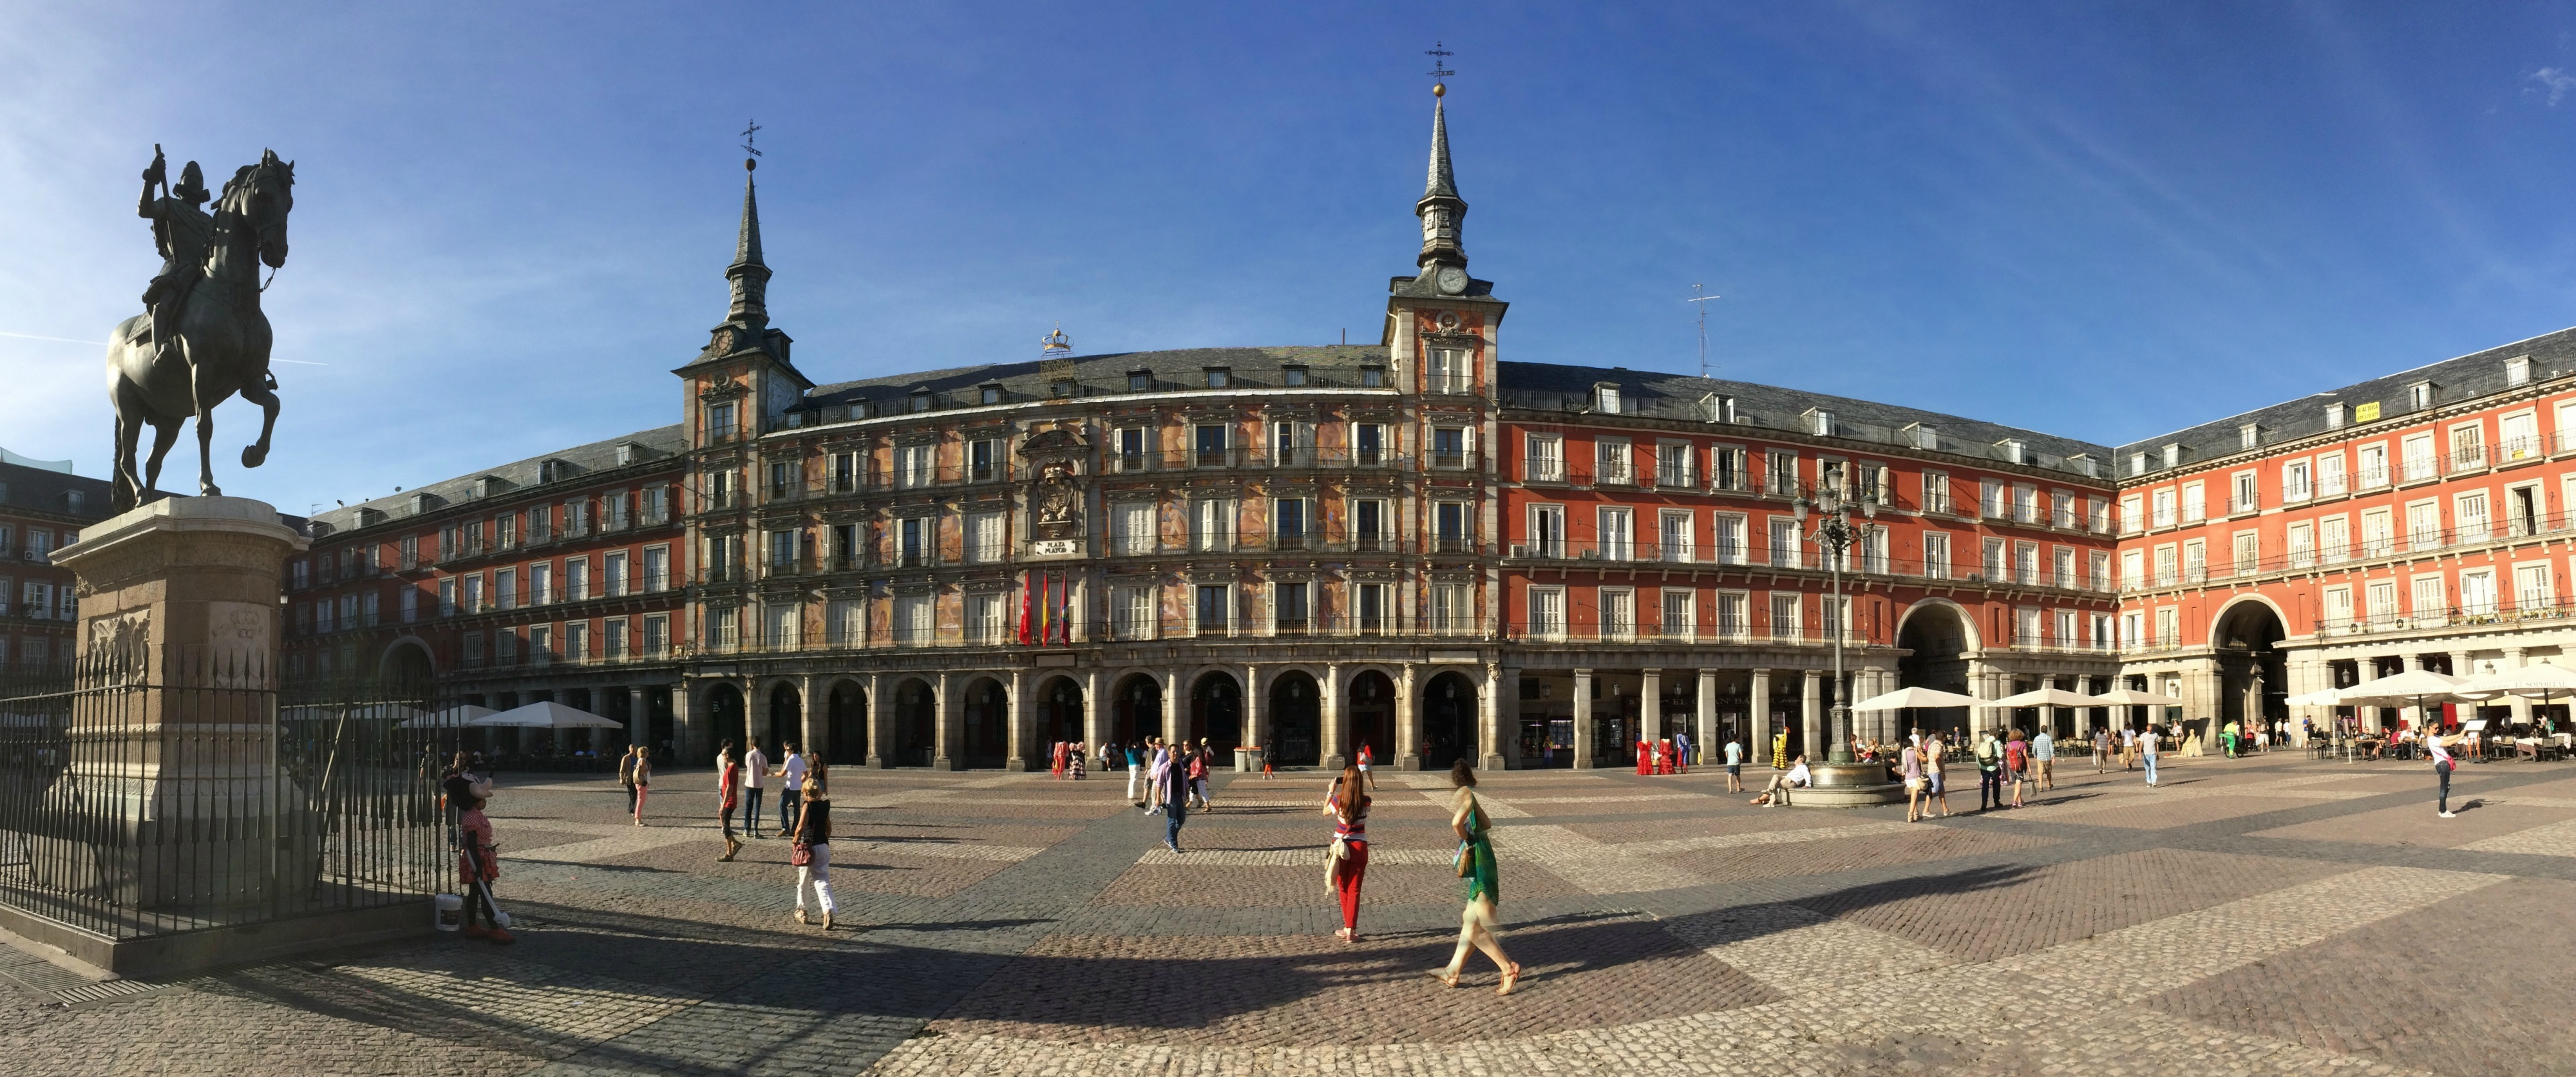 PlazaMayorKrisArnoldflickr Plaza Mayor in Madrid